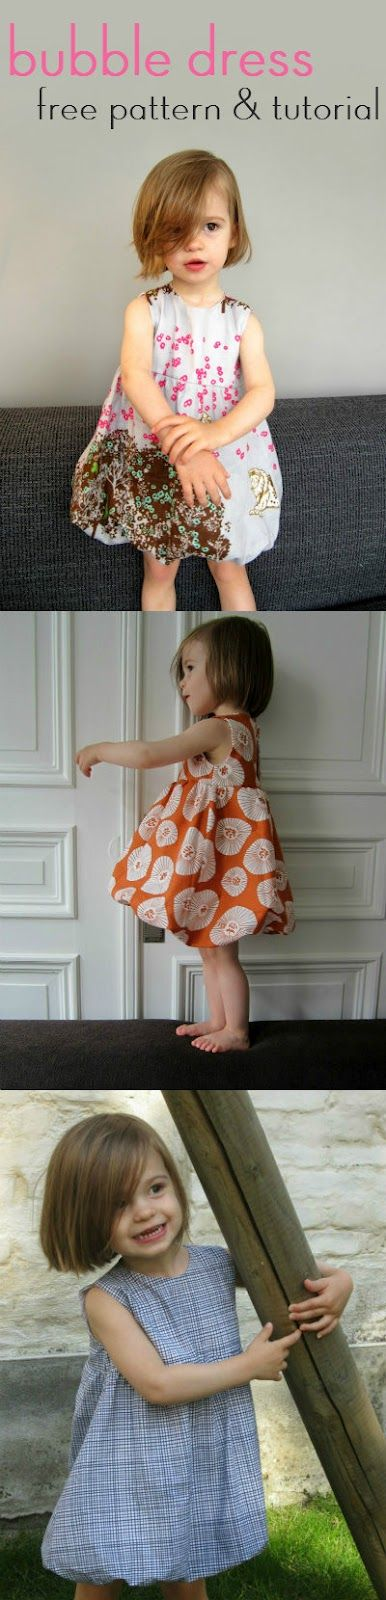 Bubble dress: pattern and tutorial